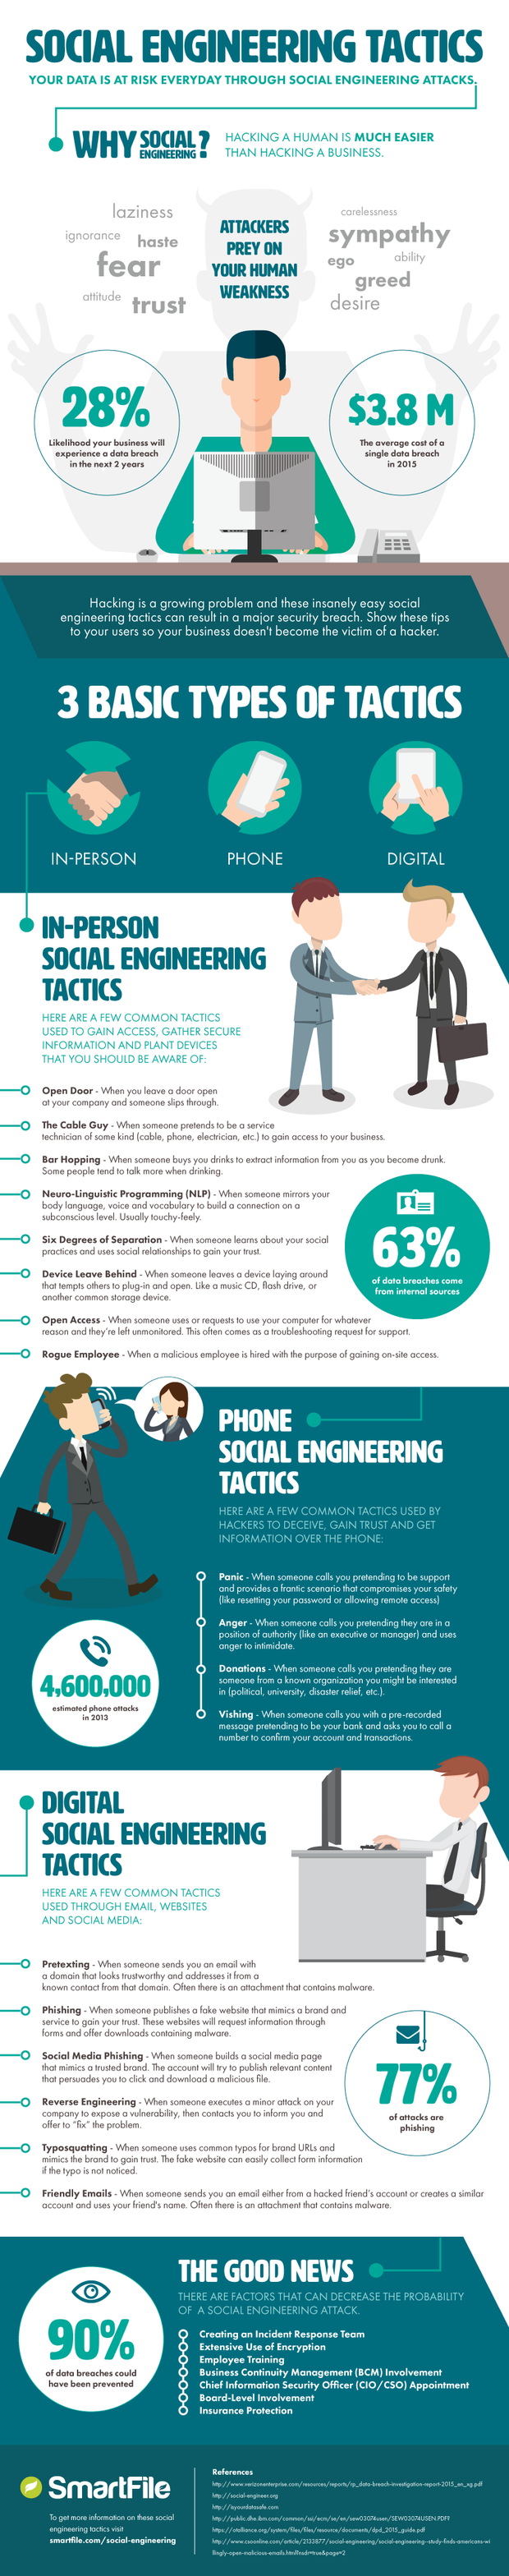 smartfile-social-engineering-infographic-100652043-large.idge.png